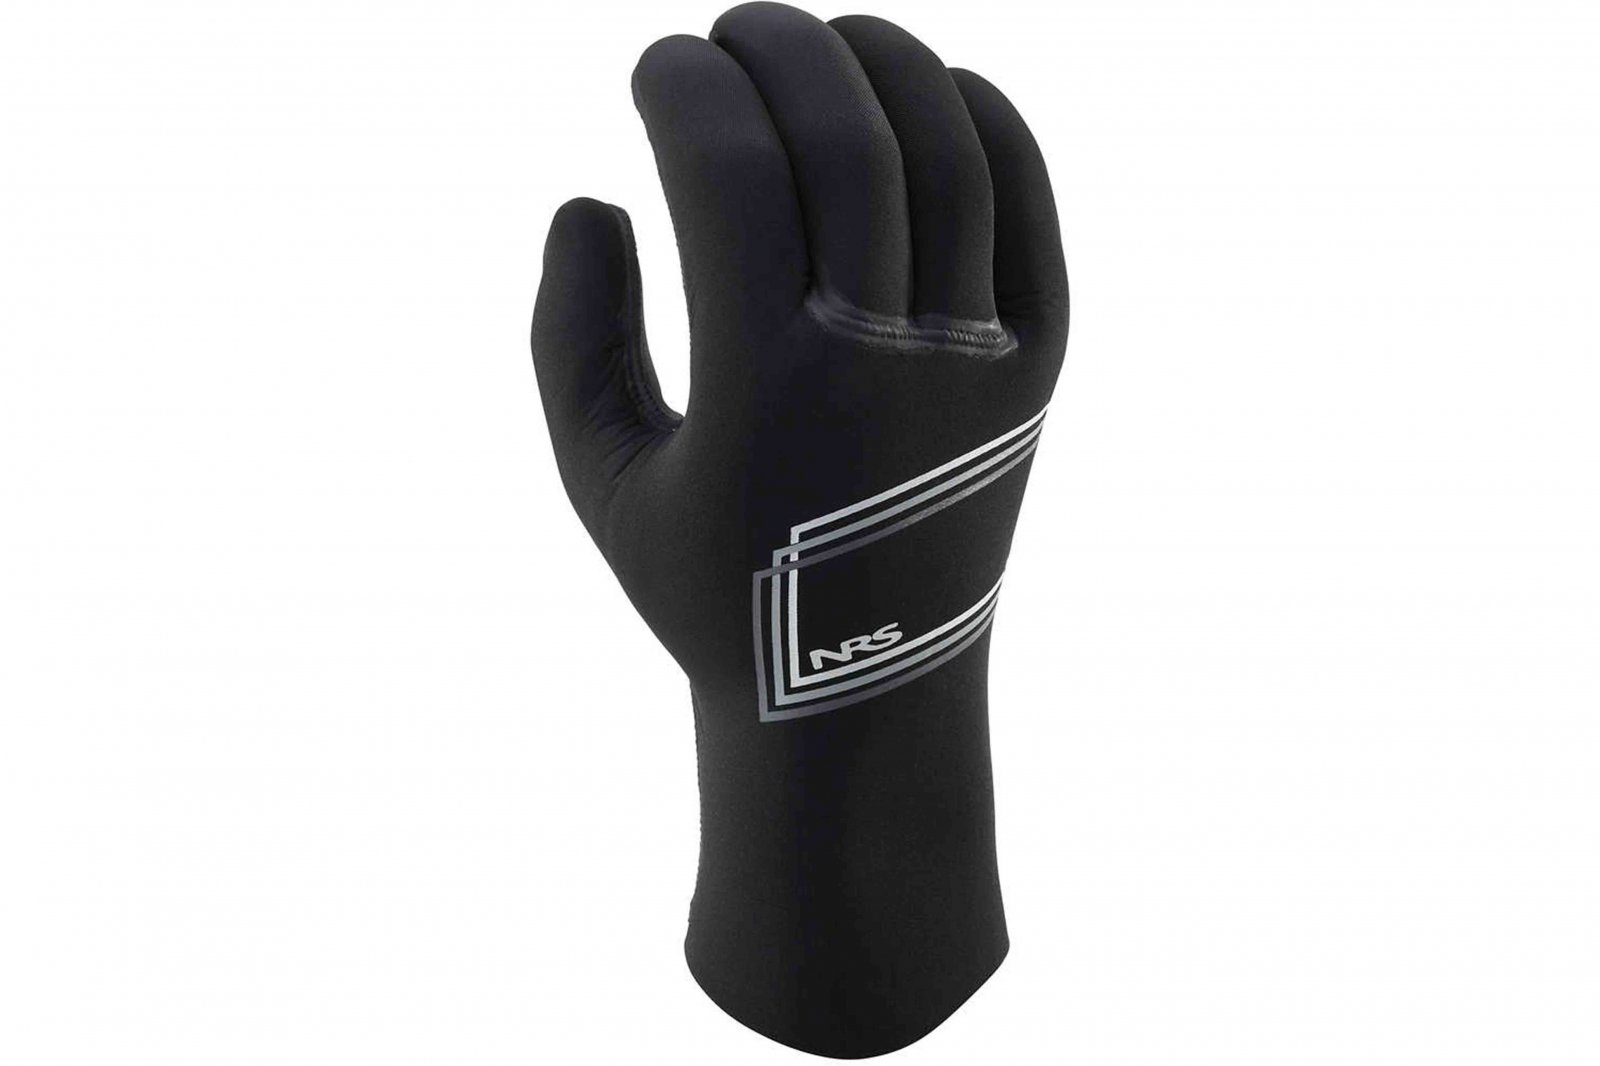 <img class='new_mark_img1' src='https://img.shop-pro.jp/img/new/icons5.gif' style='border:none;display:inline;margin:0px;padding:0px;width:auto;' />NRS Maxim Gloves Black マキシム グローブ ブラック (25039)